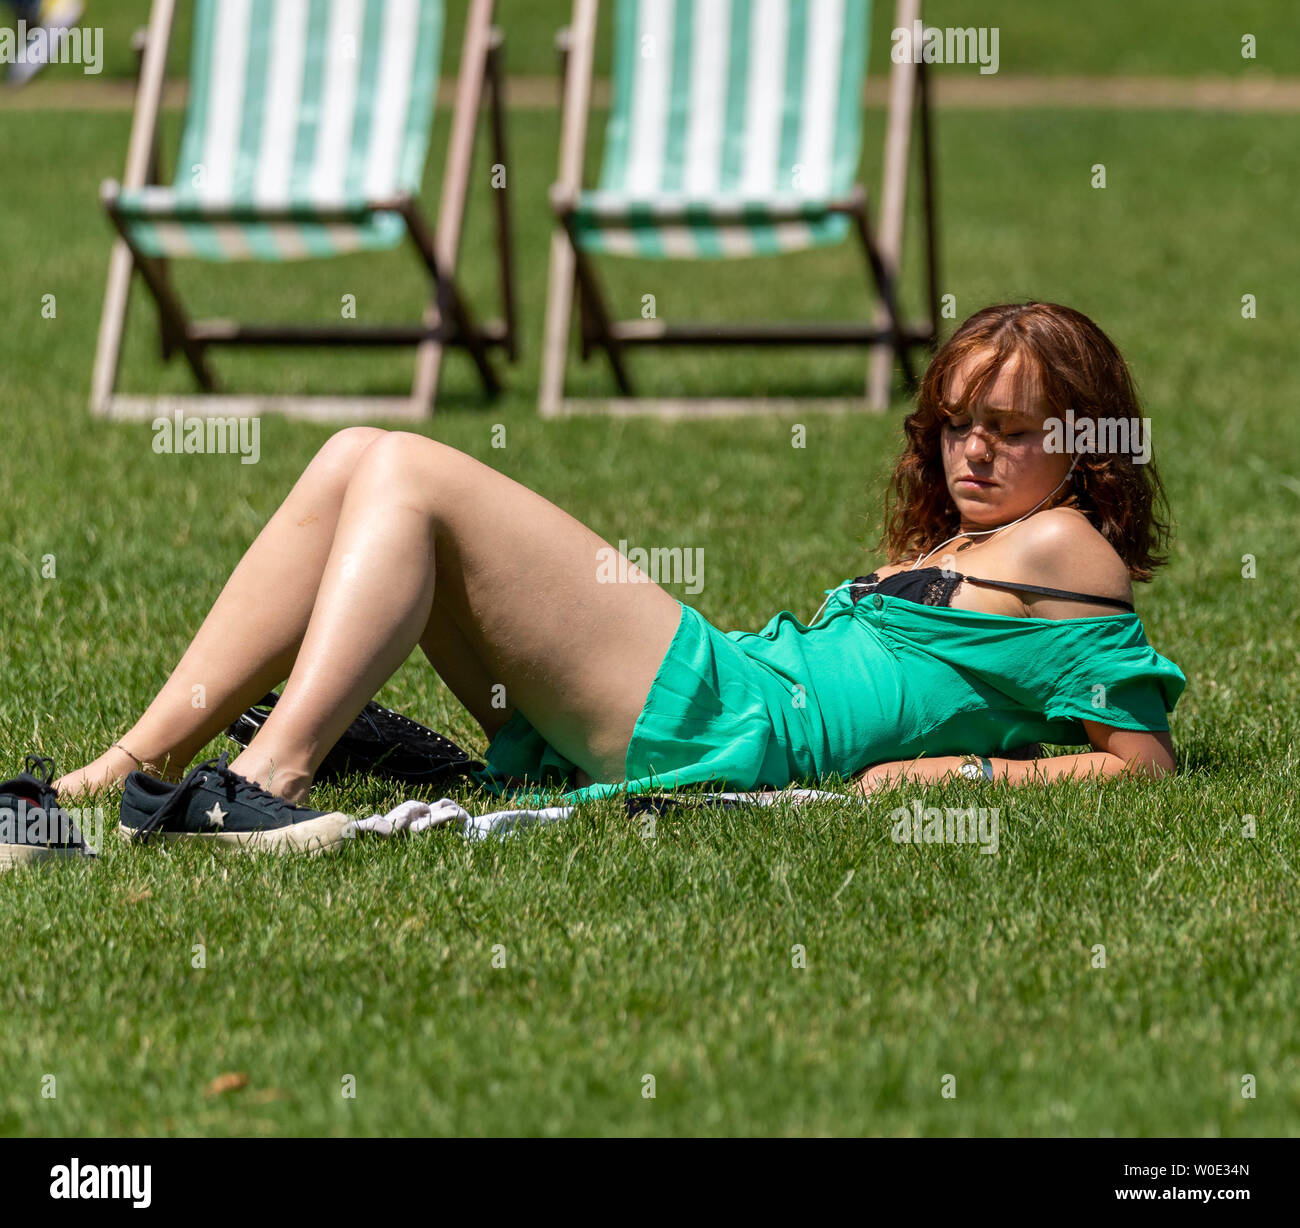 London. 27th June 2019. UK Weather: Sunshine in Green Park, London Credit: Ian Davidson/Alamy Live News Stock Photo